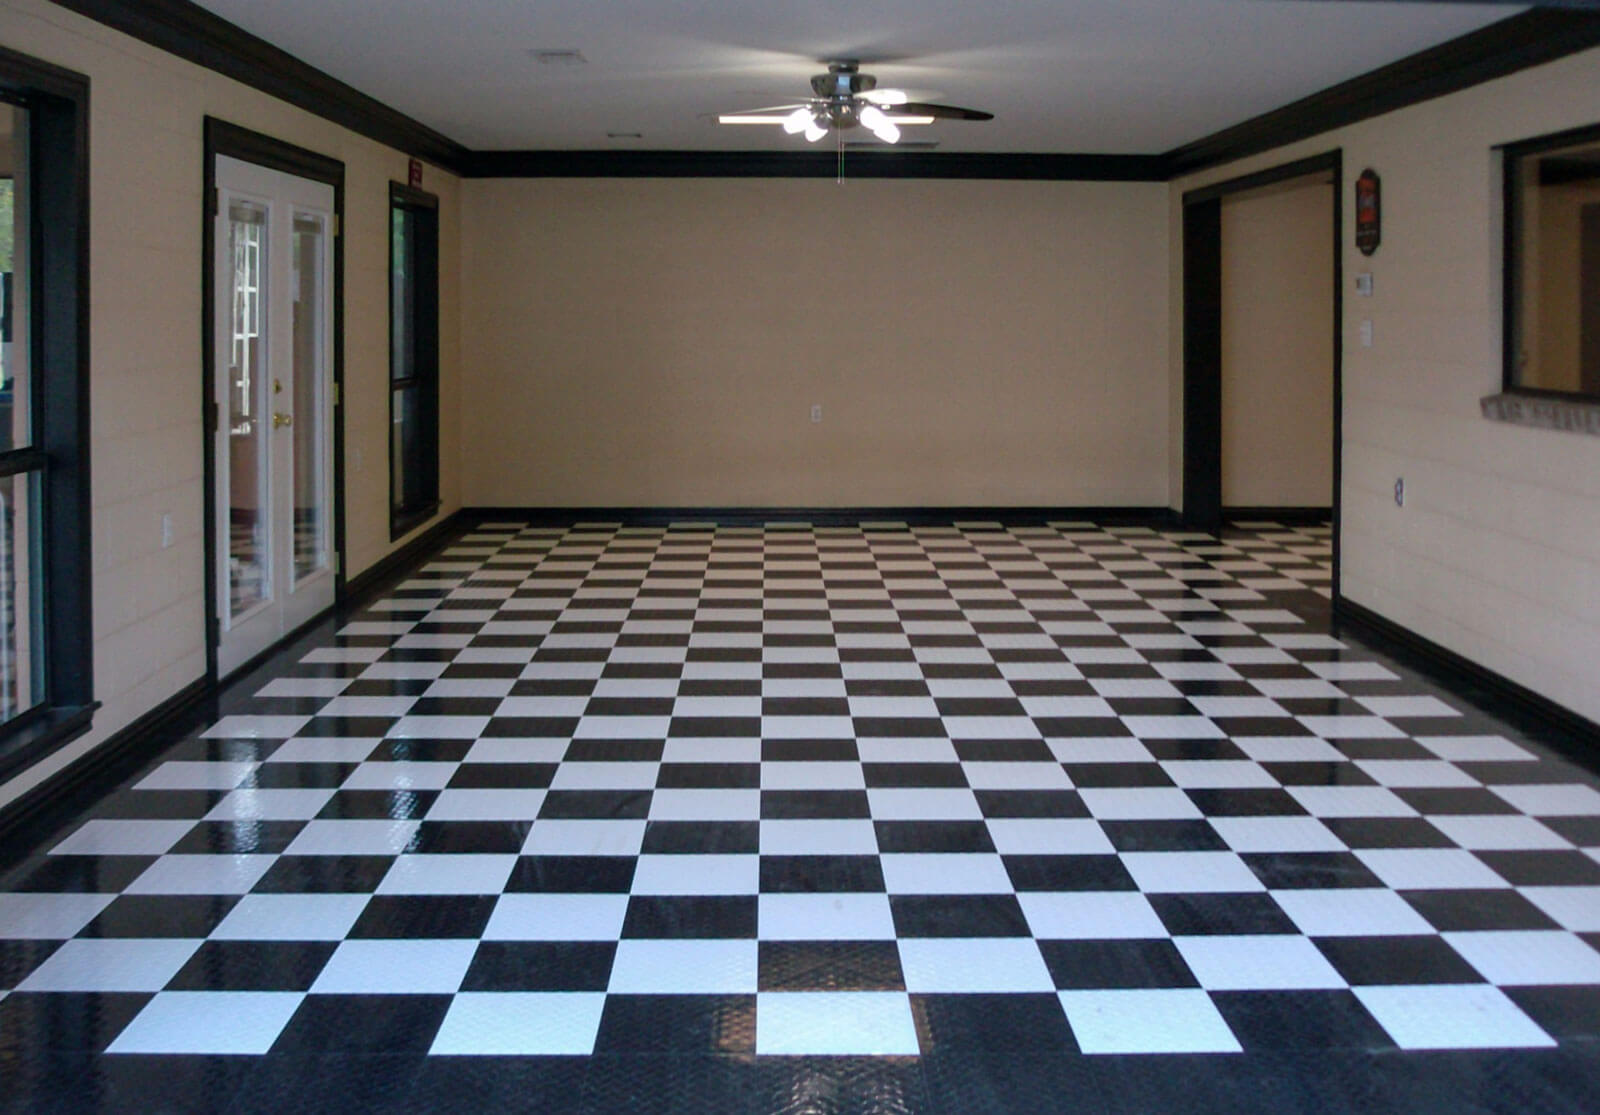 Checkered black and white RaceDeck Diamond flooring interior